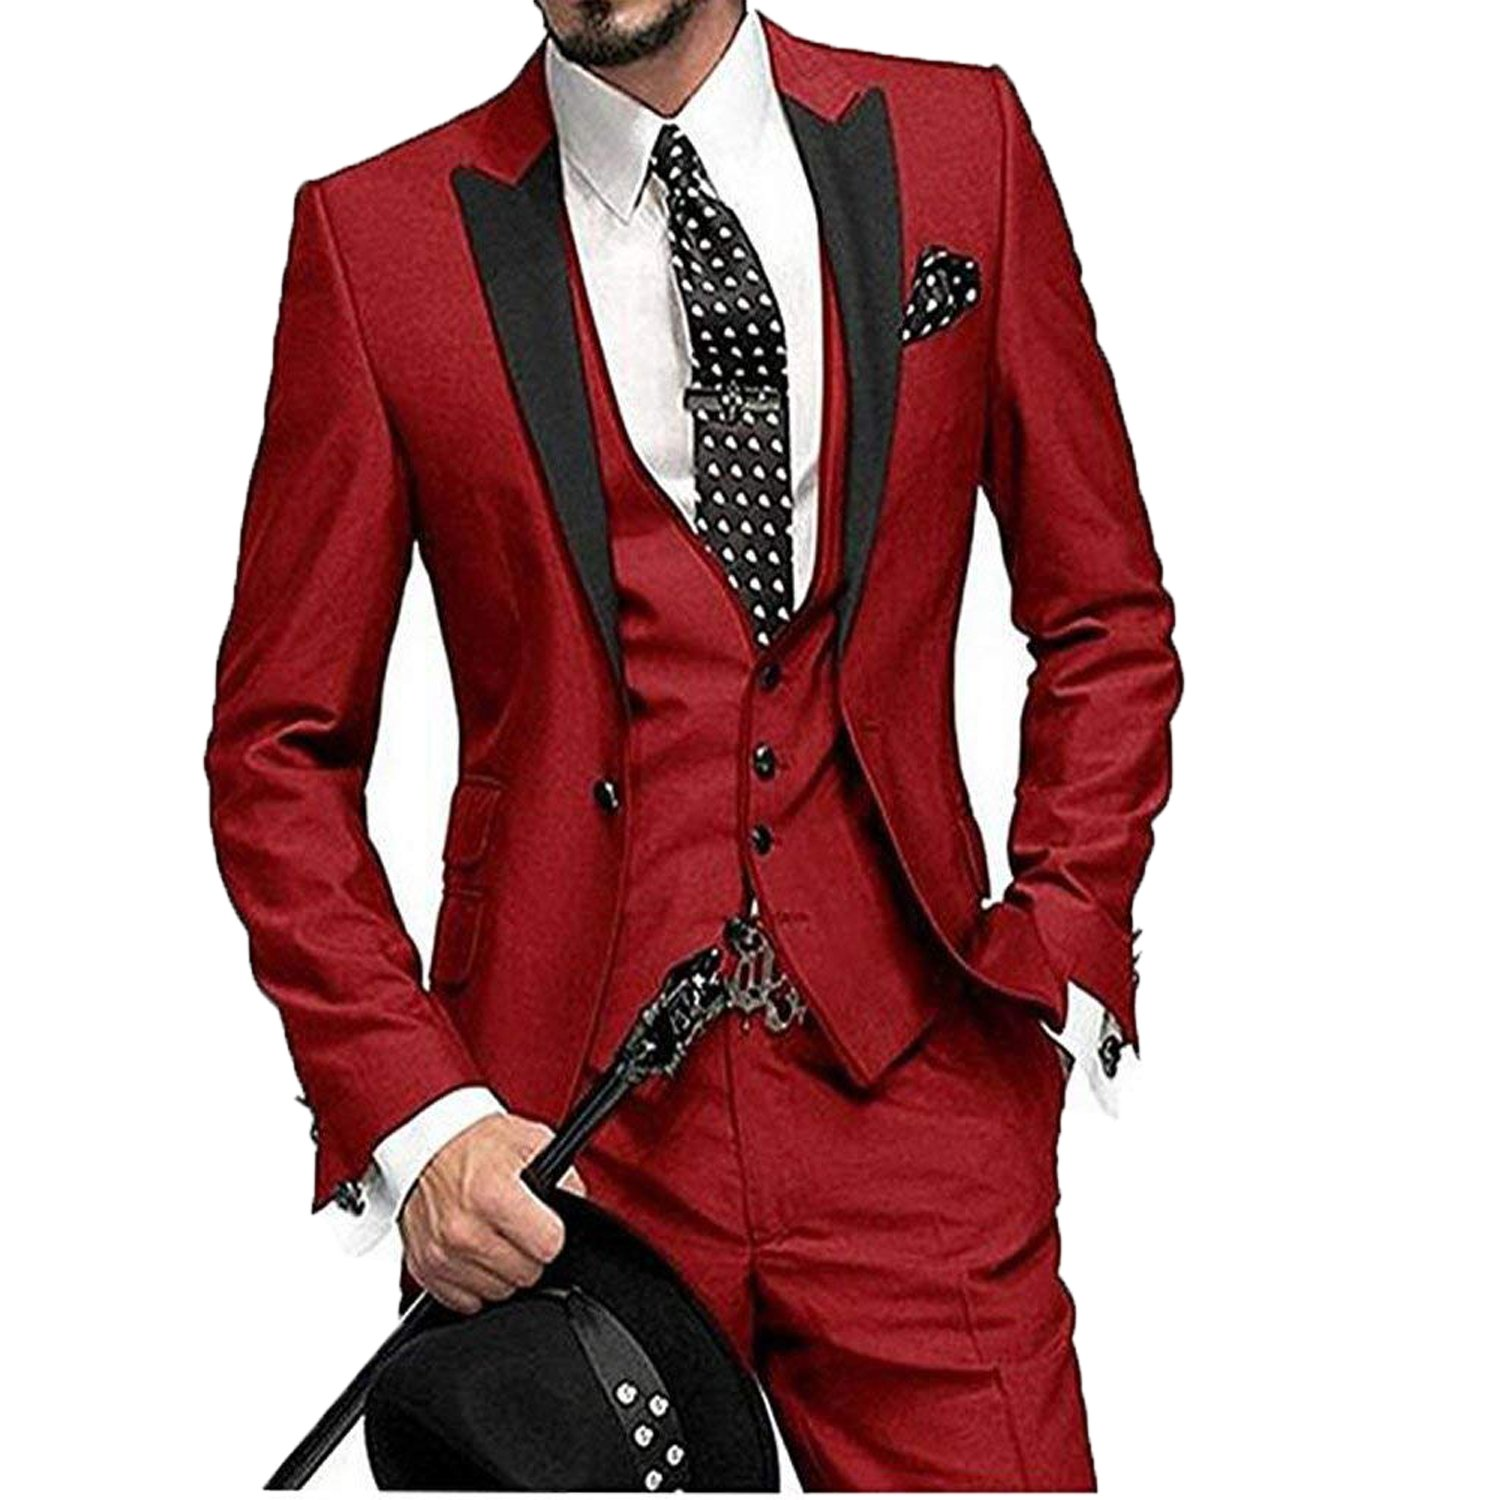 Fenghuavip One Button 3 Pieces Wedding Suits Lapel Men Suits Groom Tuxedos